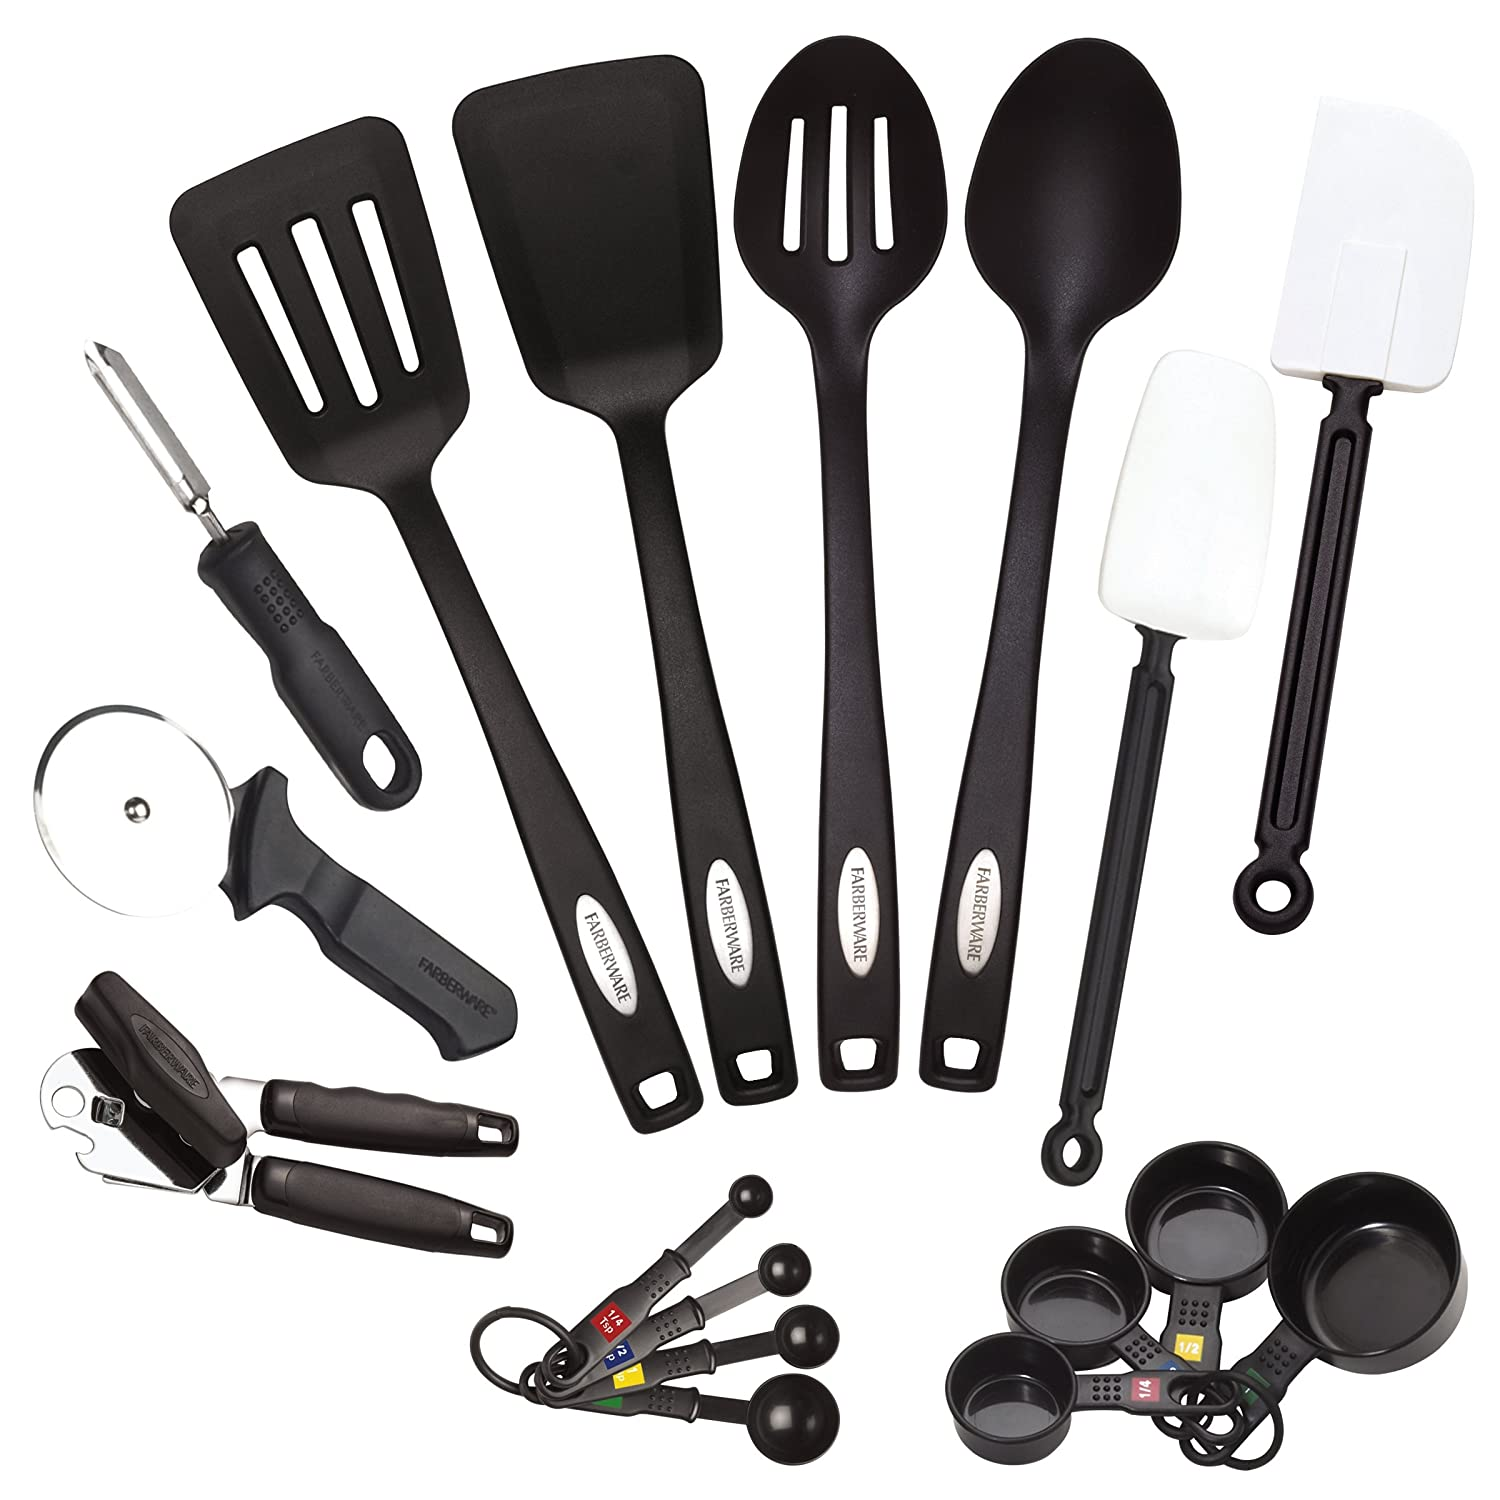 Farberware Classic 17 Piece Tool And Gadget Set Kitchen Cooking